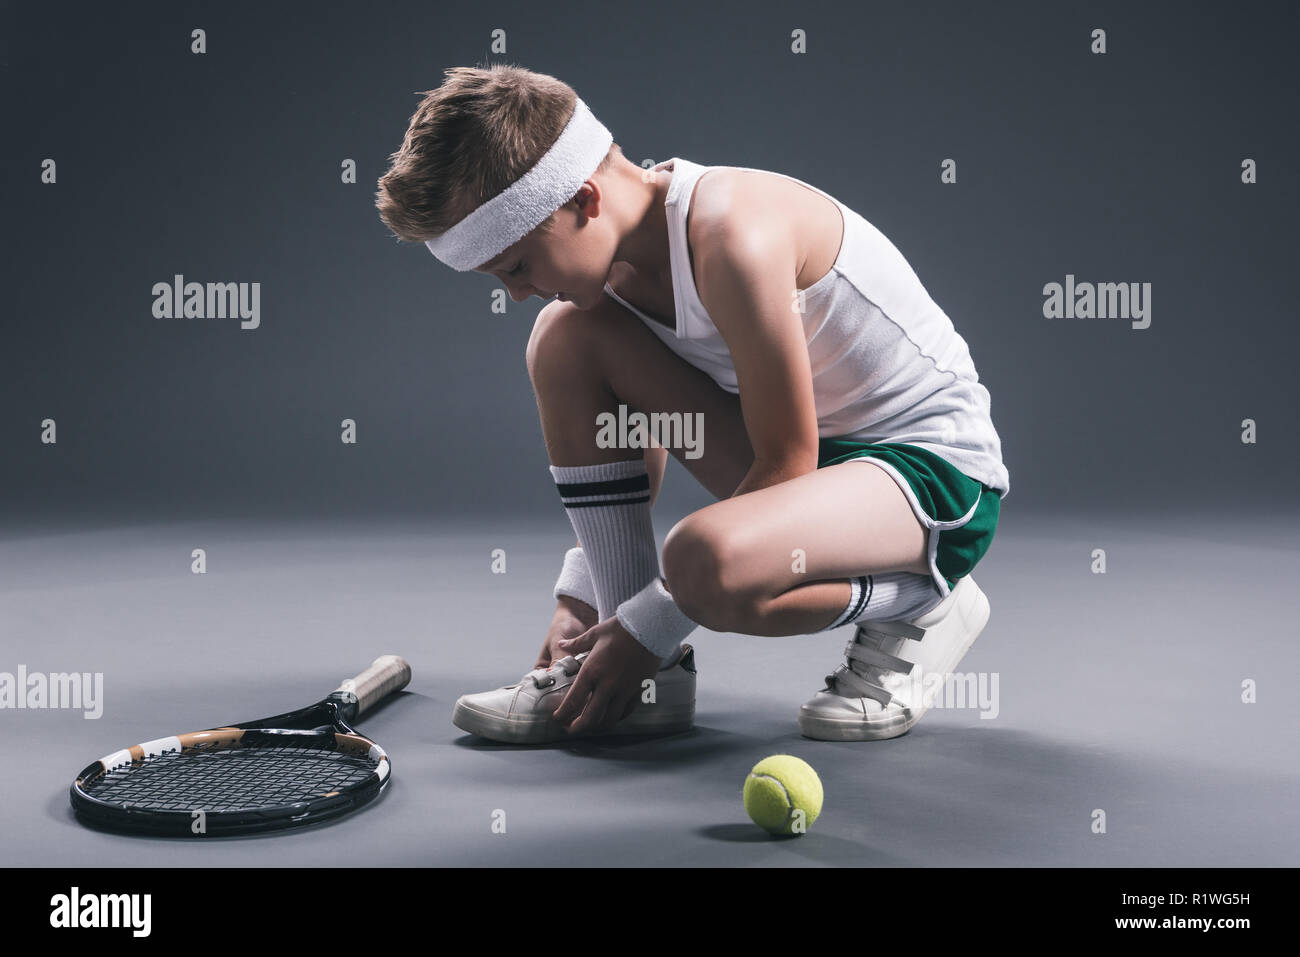 preteen boy in sportswear with tennis racket and ball on dark background - Stock Image